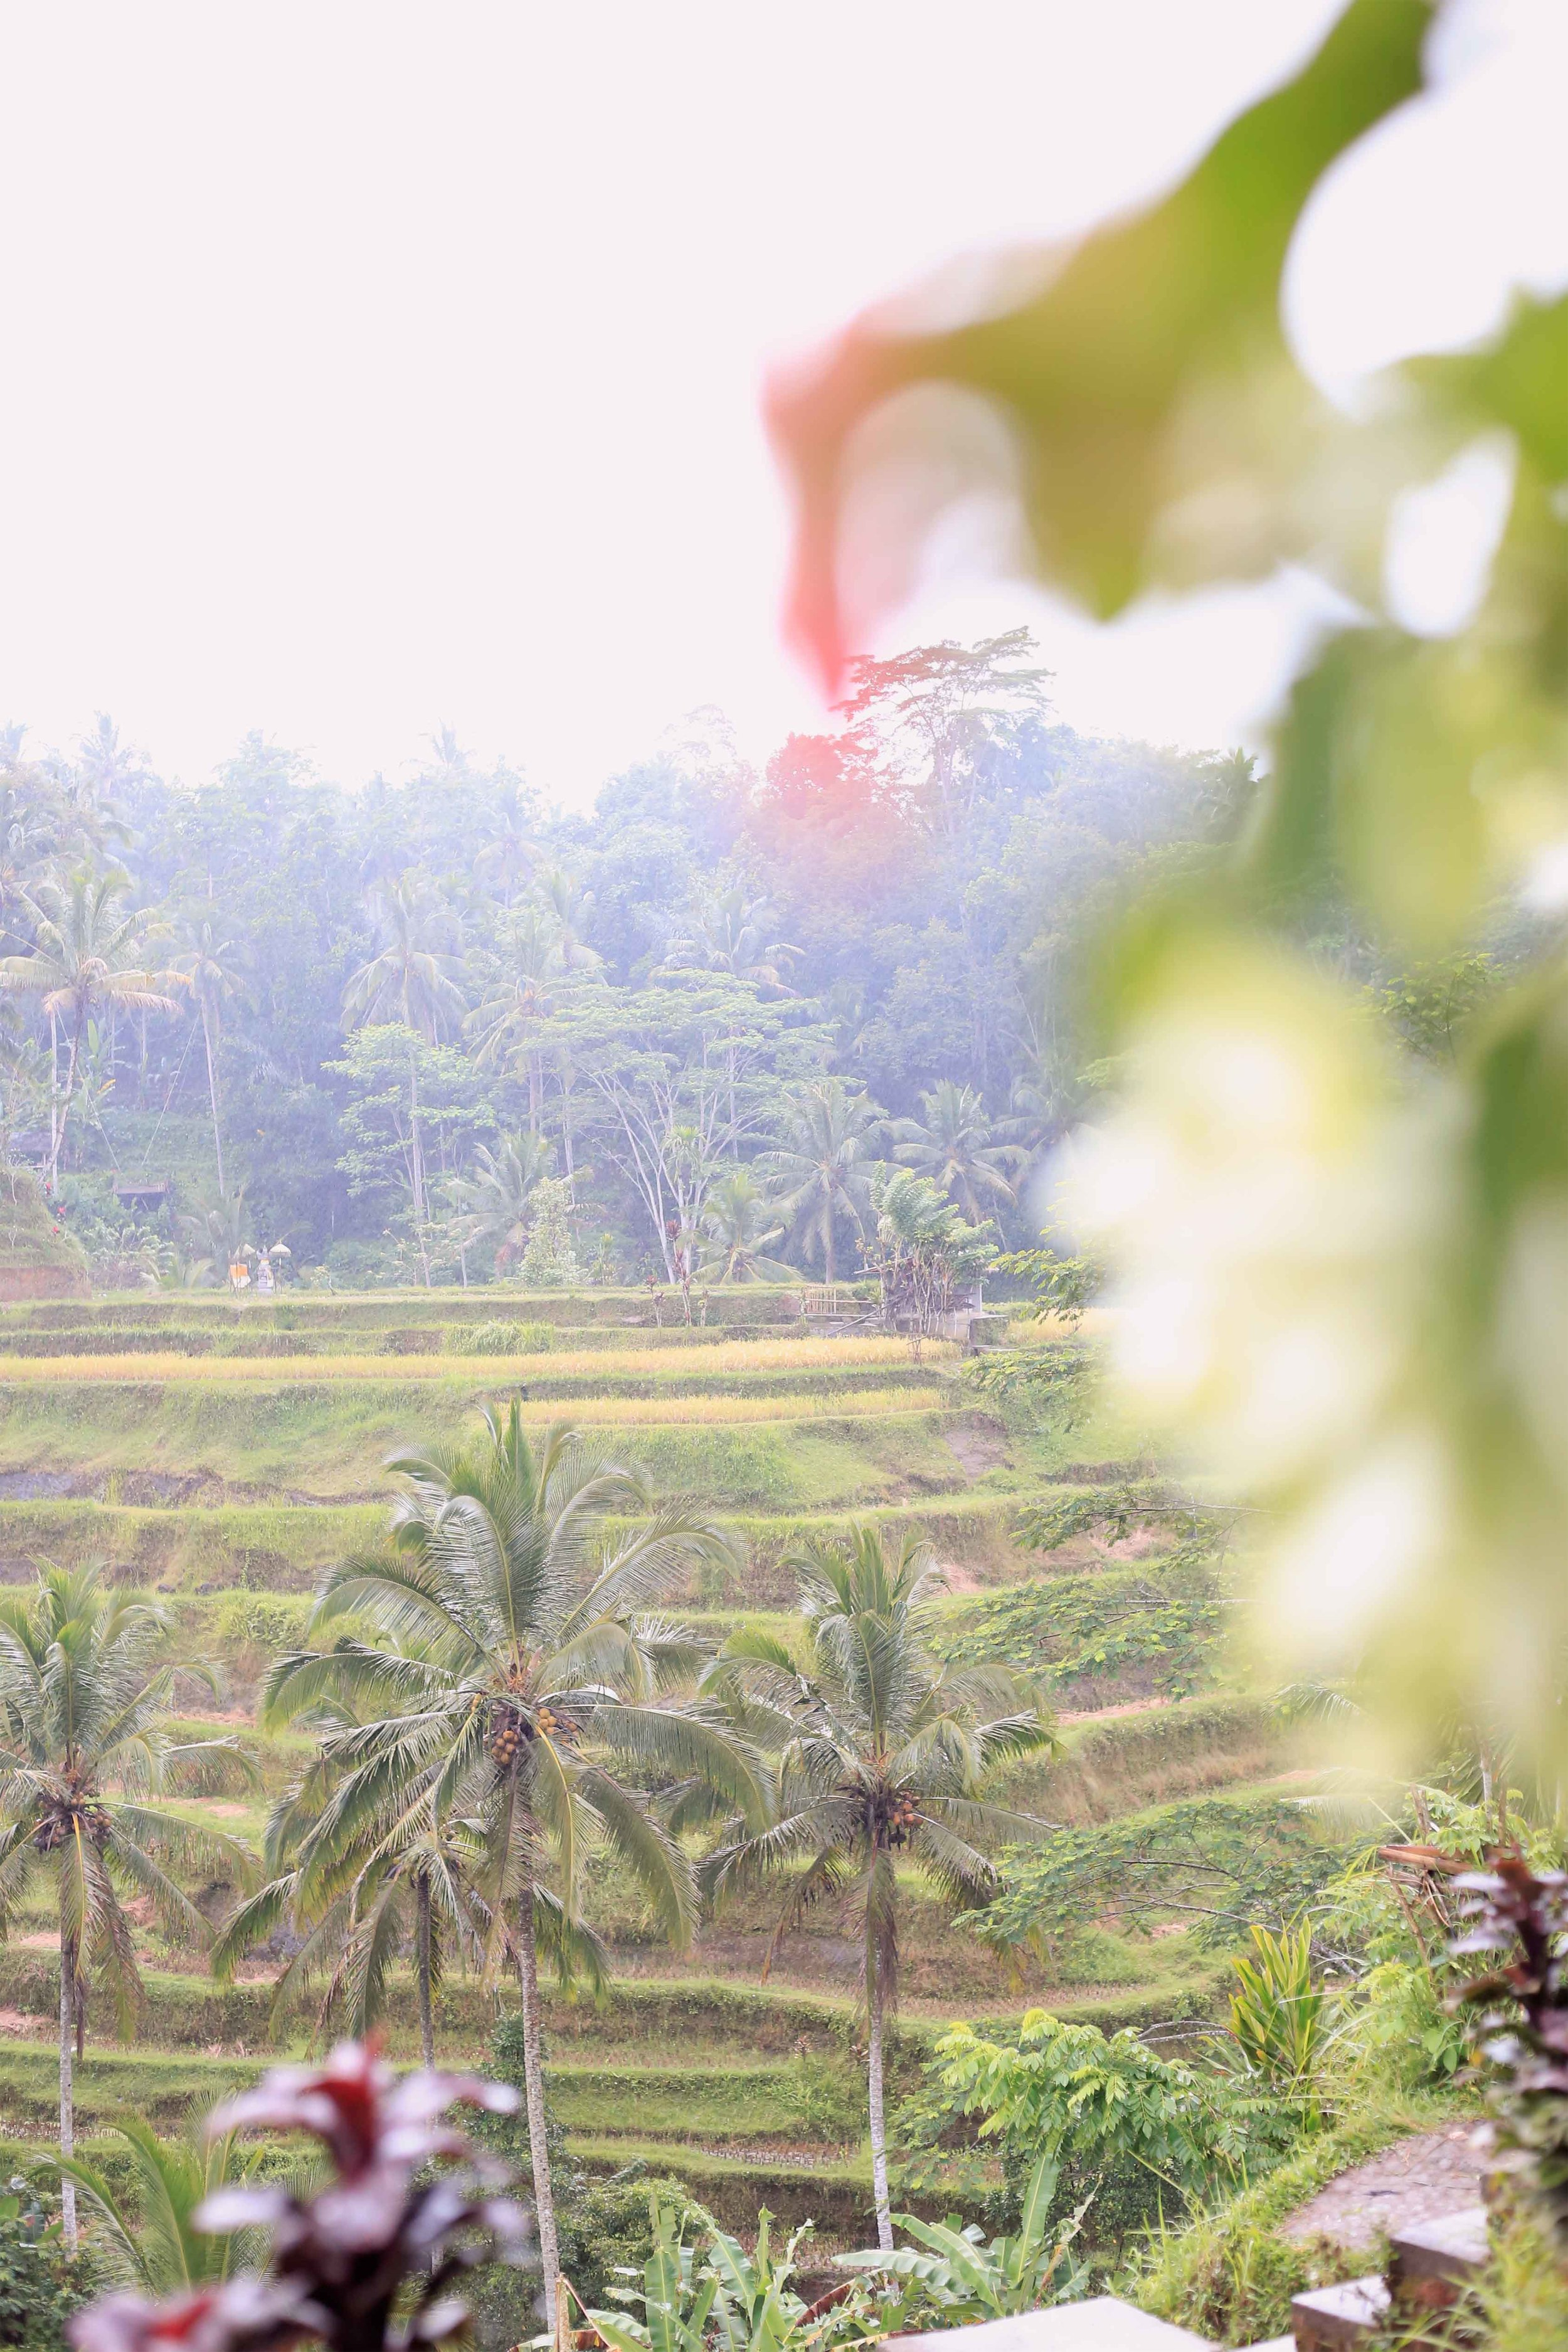 The Tellagalung Rice Field just outside Ubud is beautiful but there are better rice fields that are less touristy.